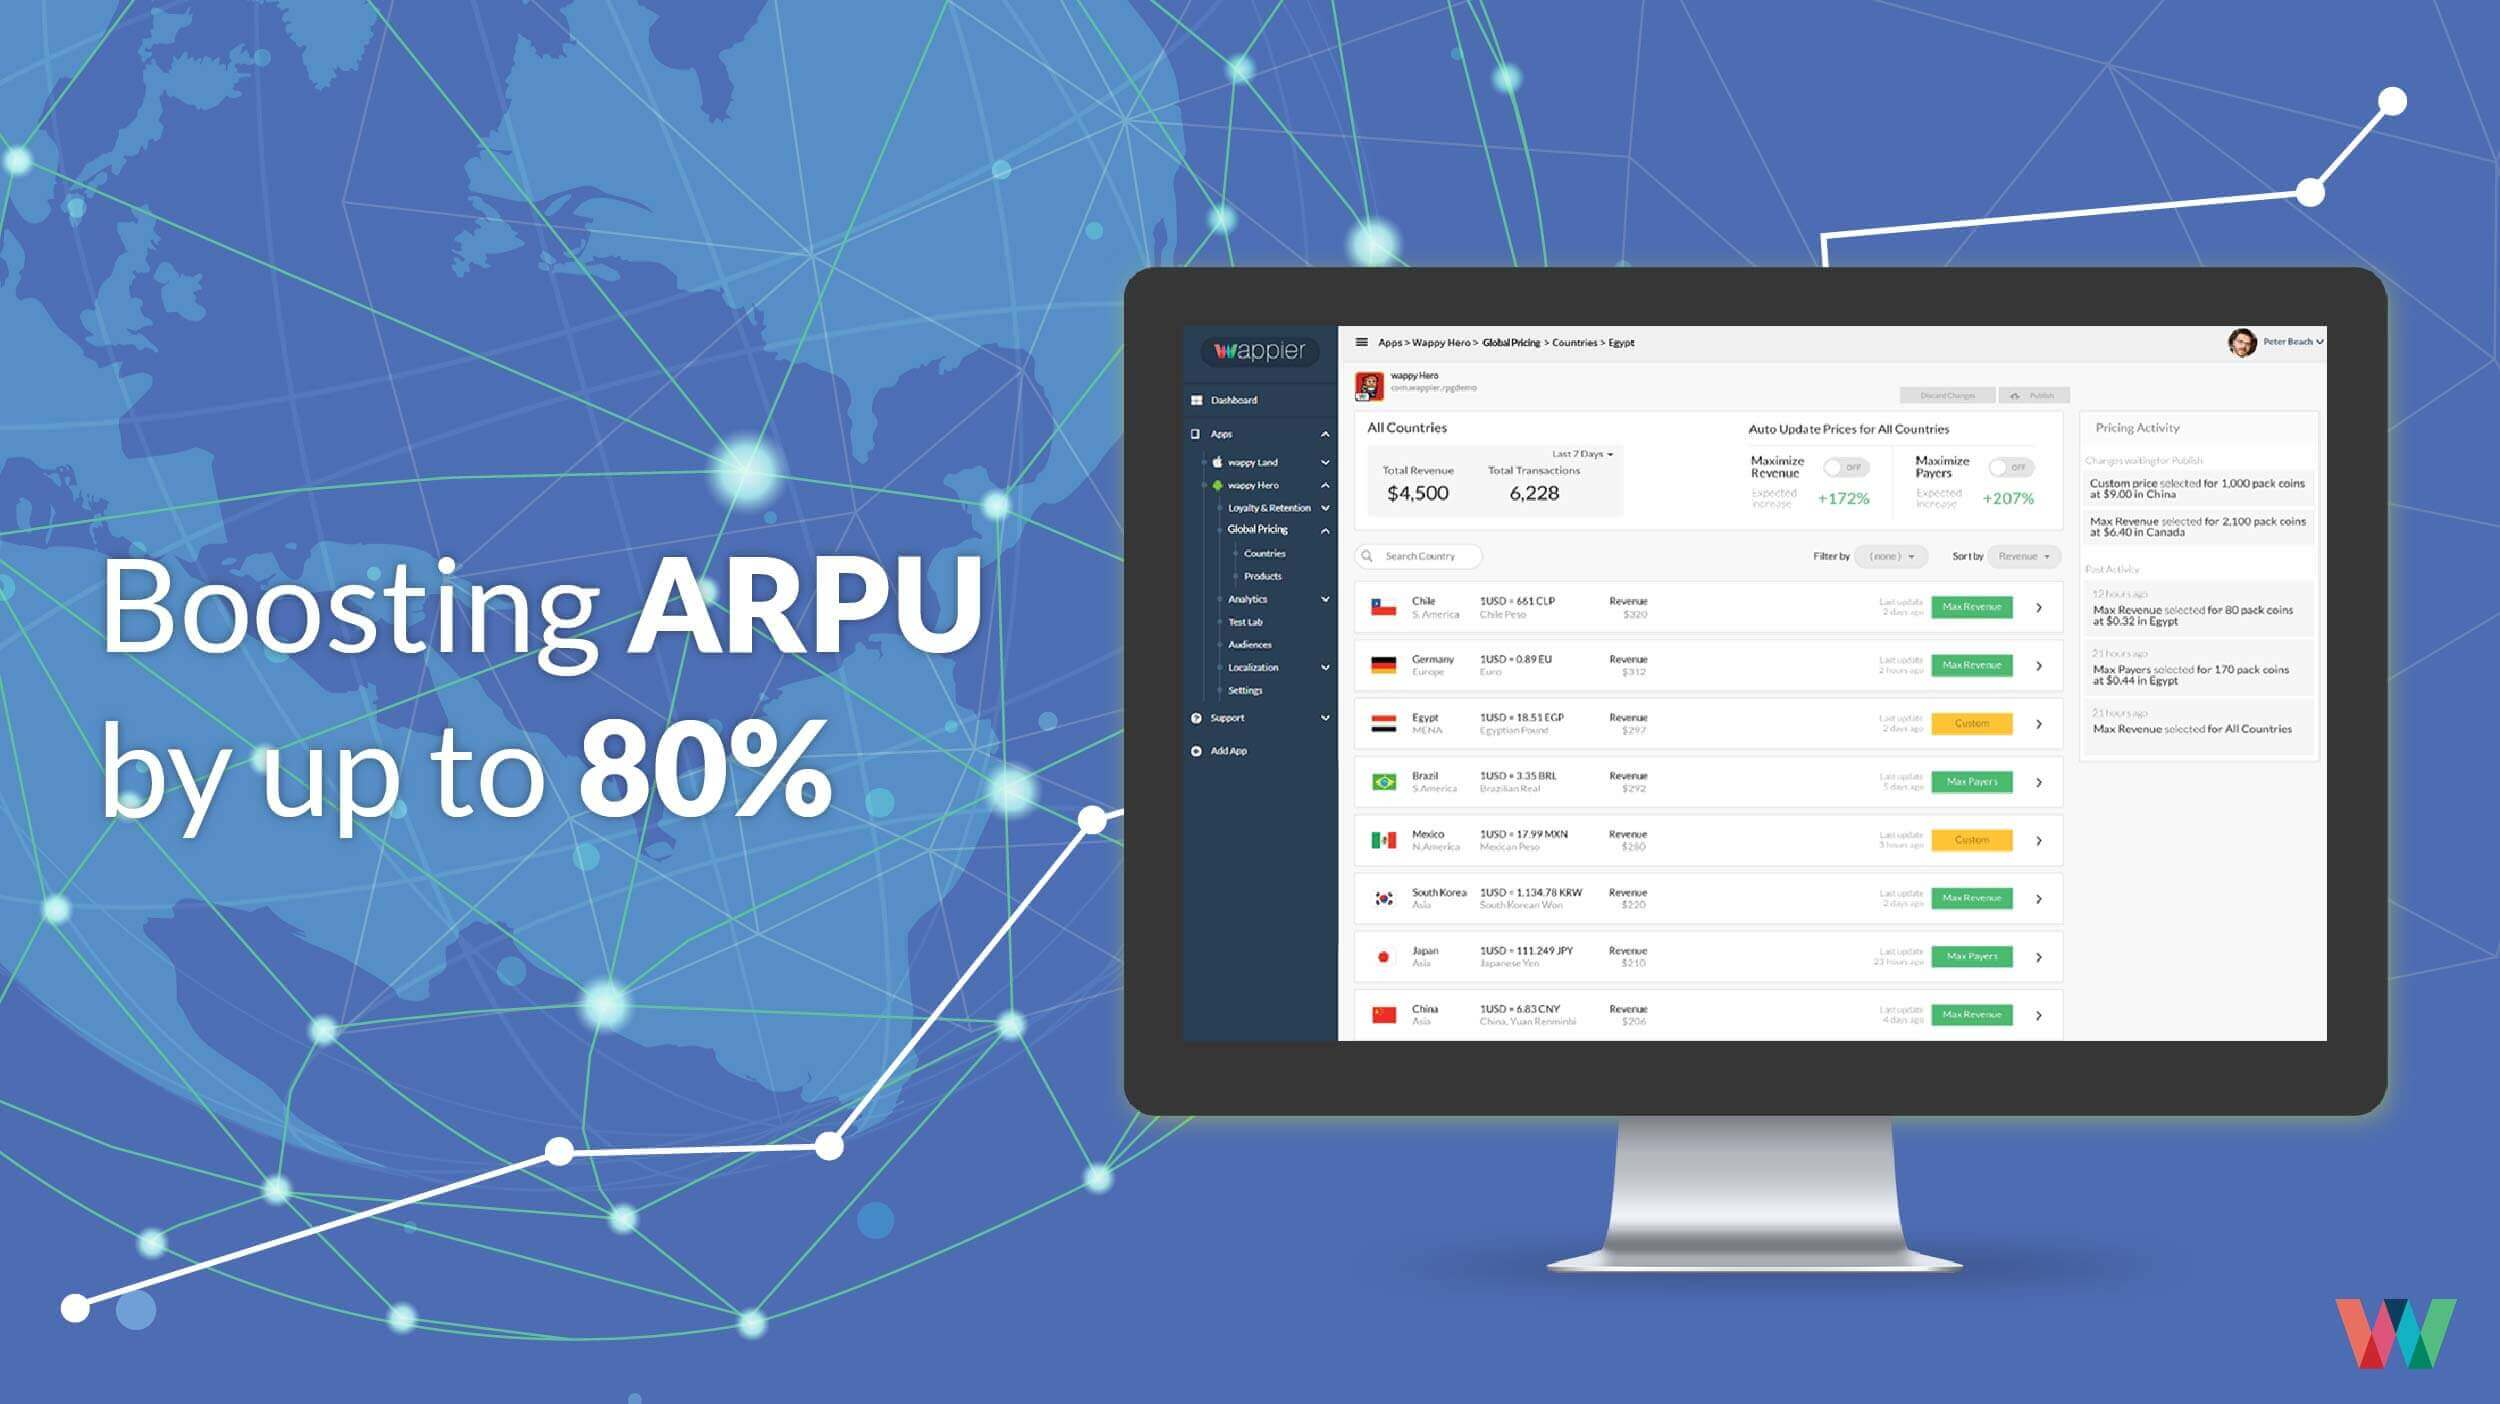 How to Boost Mobile ARPU by up to 80% with Global Pricing